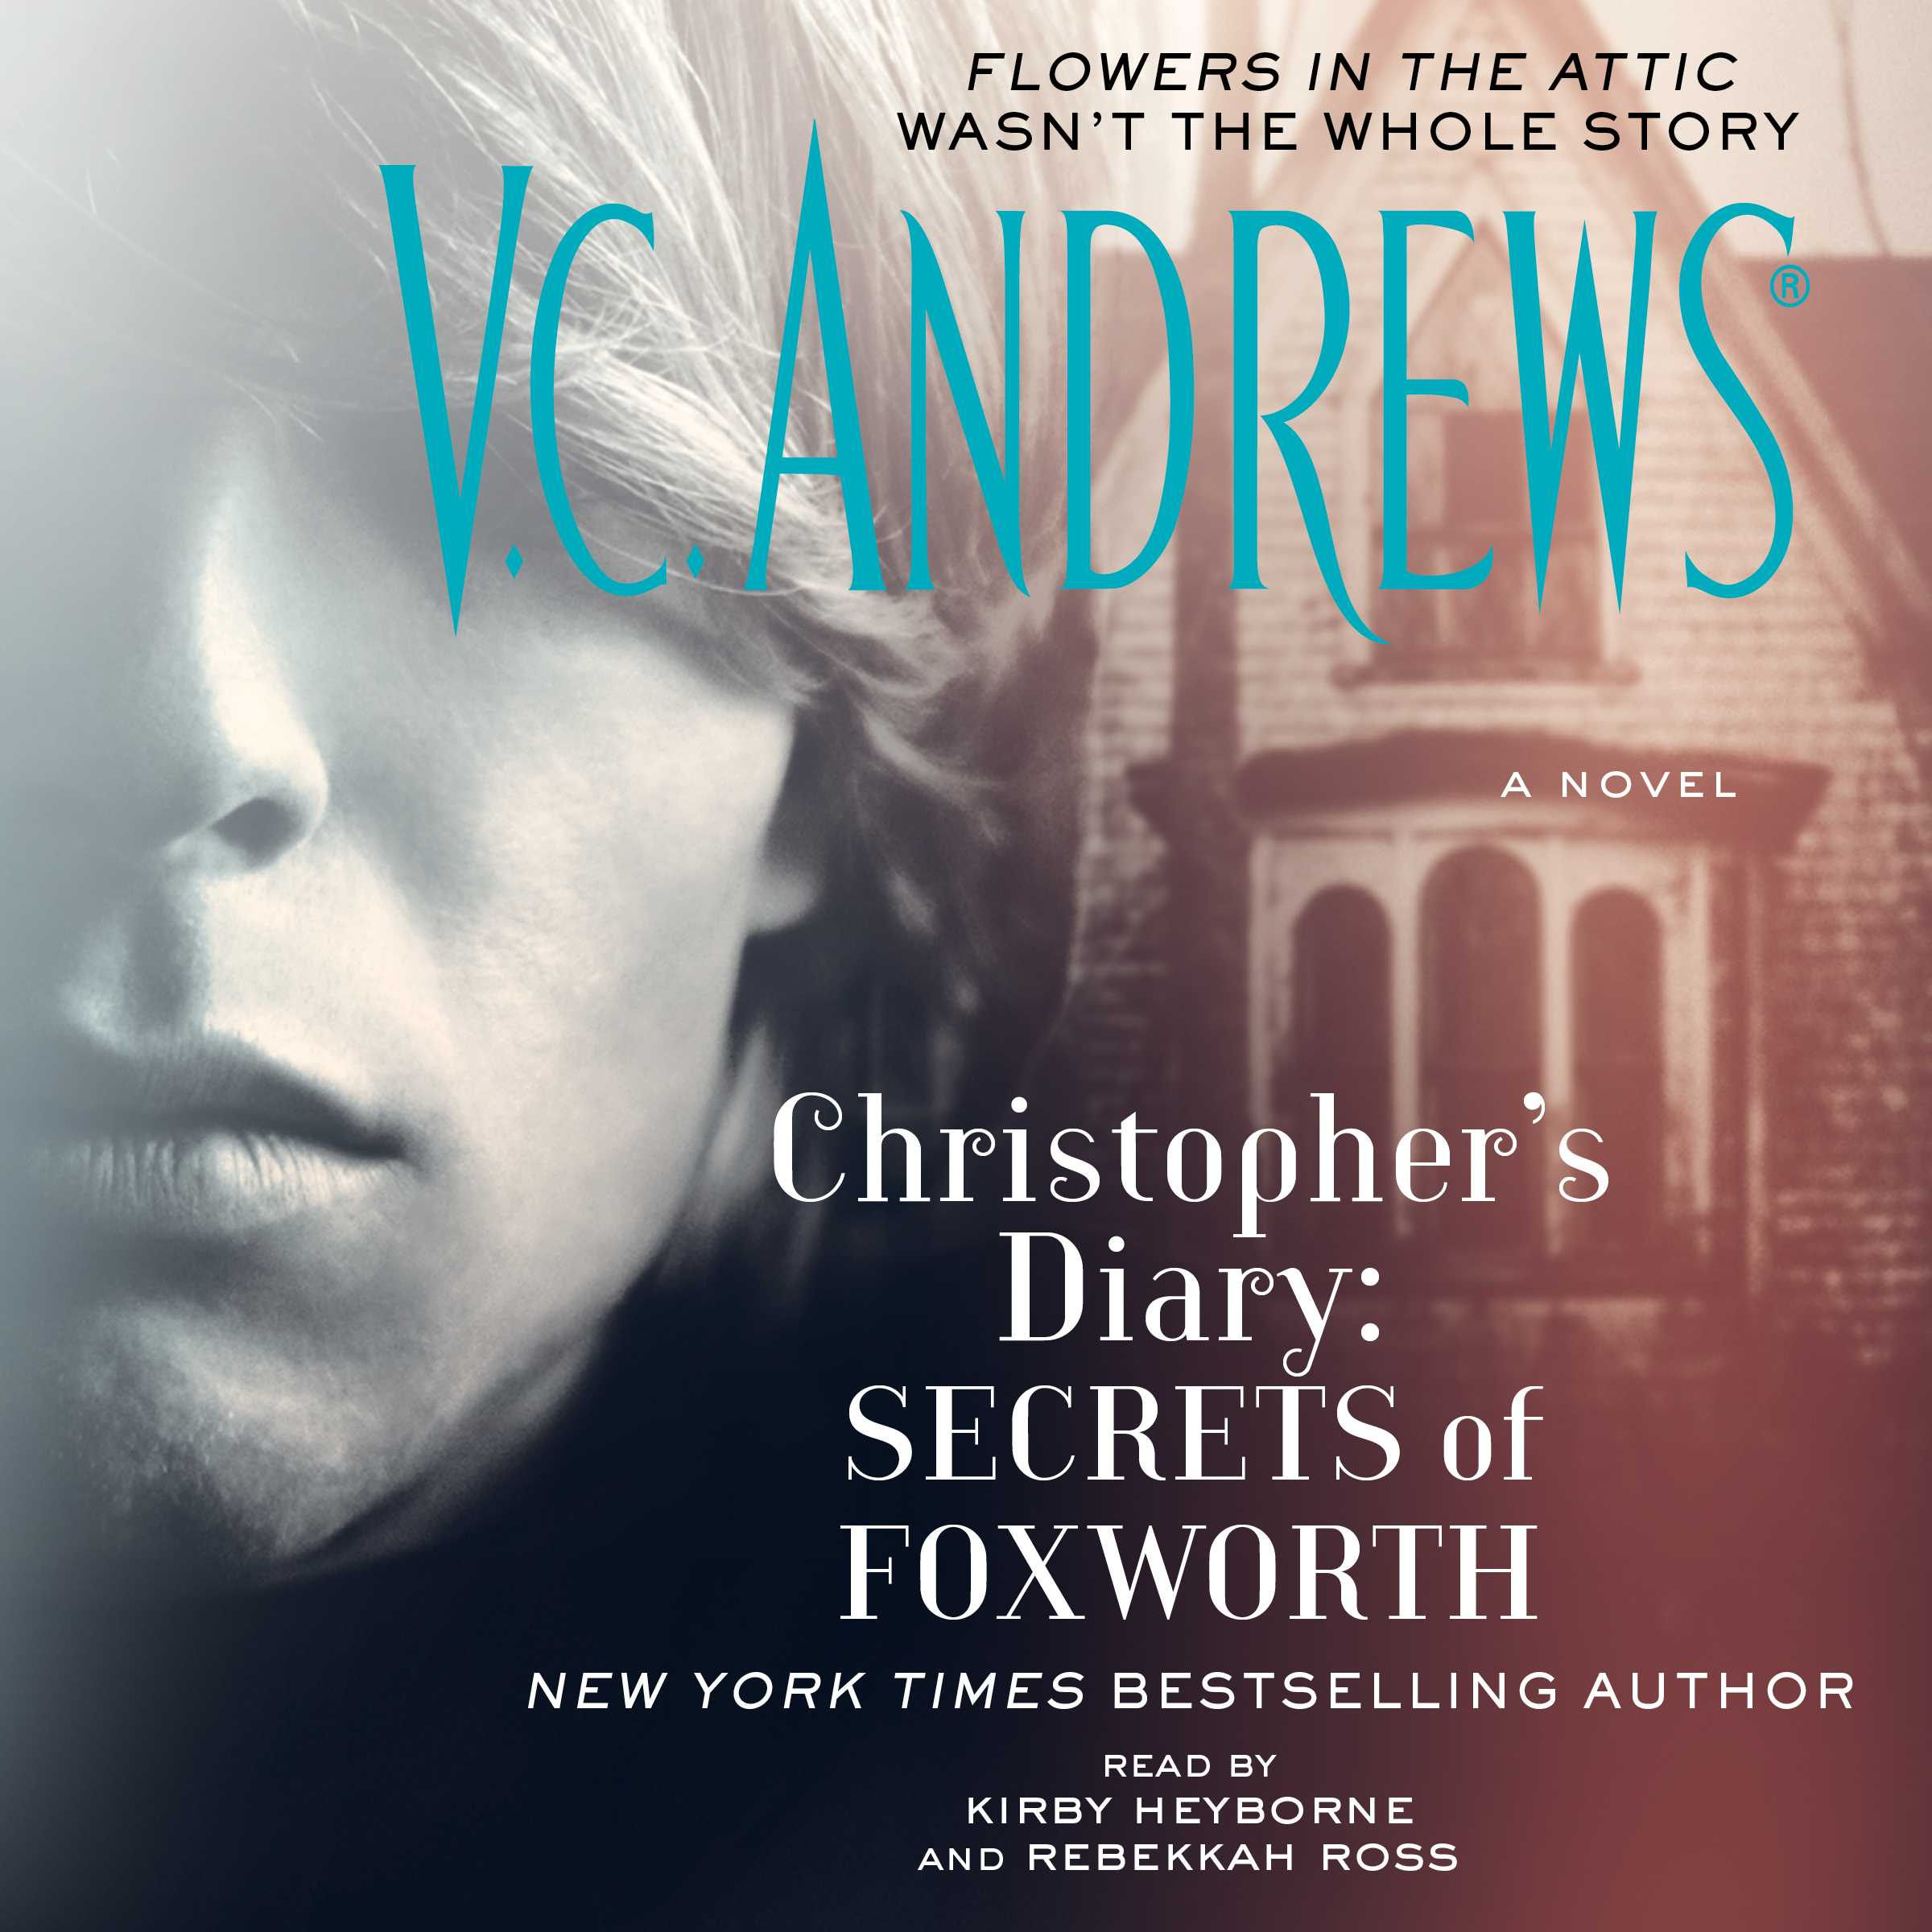 Christophers-diary-secrets-of-foxworth-9781442377660_hr